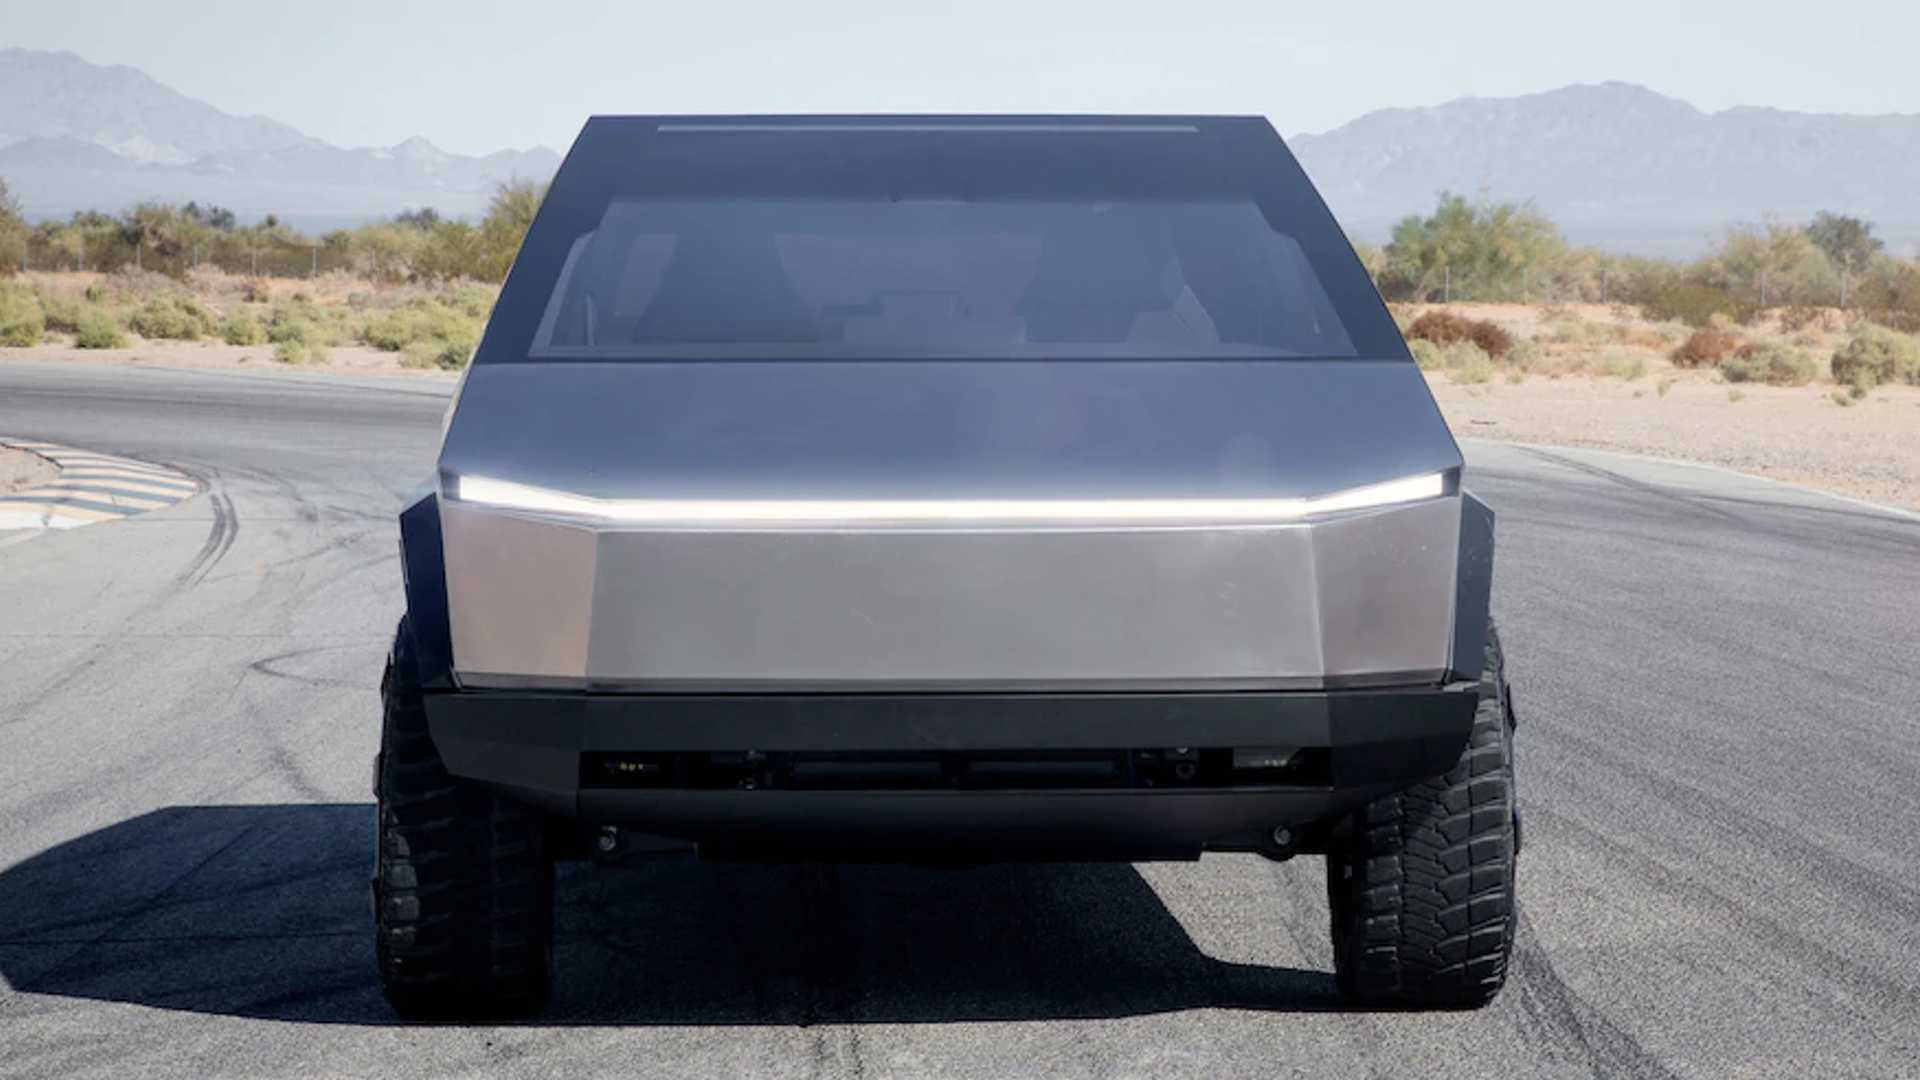 Tesla Cybertruck Totally Not Certifiable In Europe, Says Expert